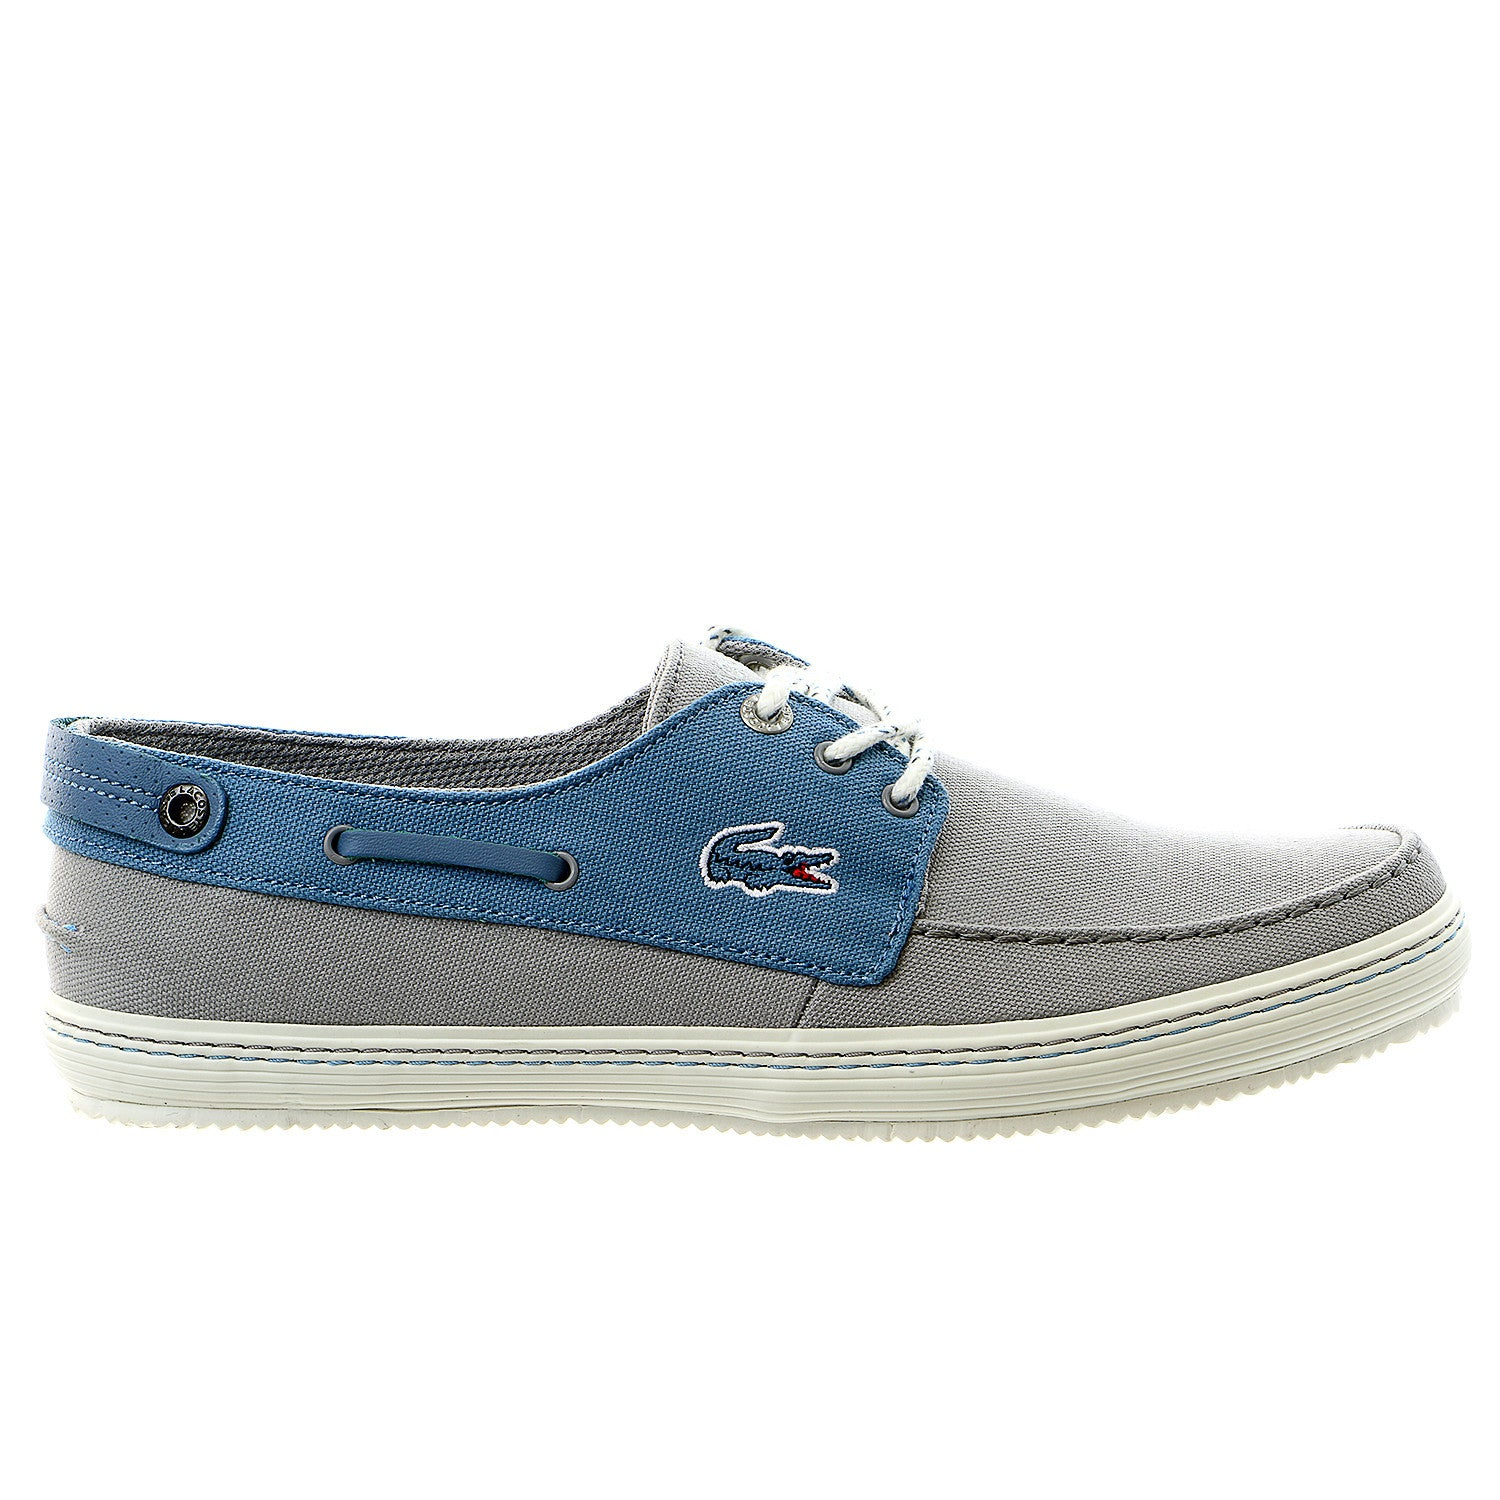 0dbf98649684f Lacoste Sumac 8 Moccasin Boat Shoe - Light Grey Blue - Mens ...